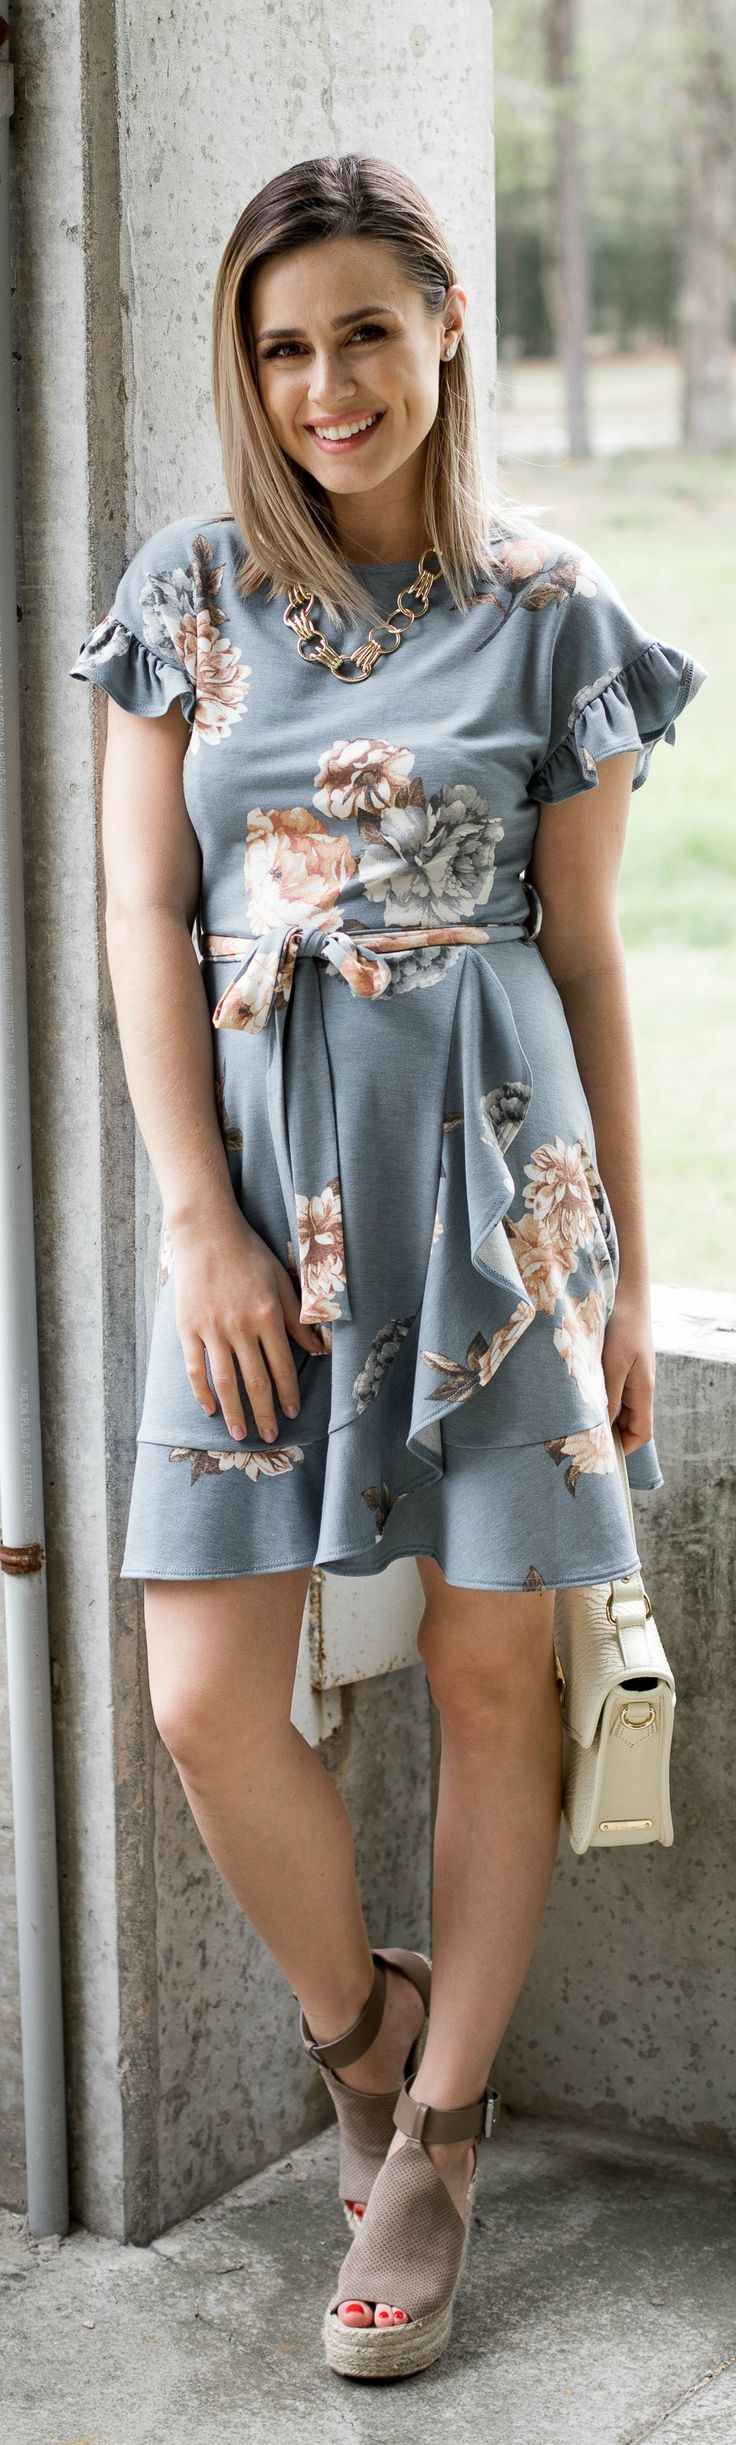 floral dress \ spring dresses \ spring outfit \ Marc Fisher wedges \ Uptown with Elly Brown